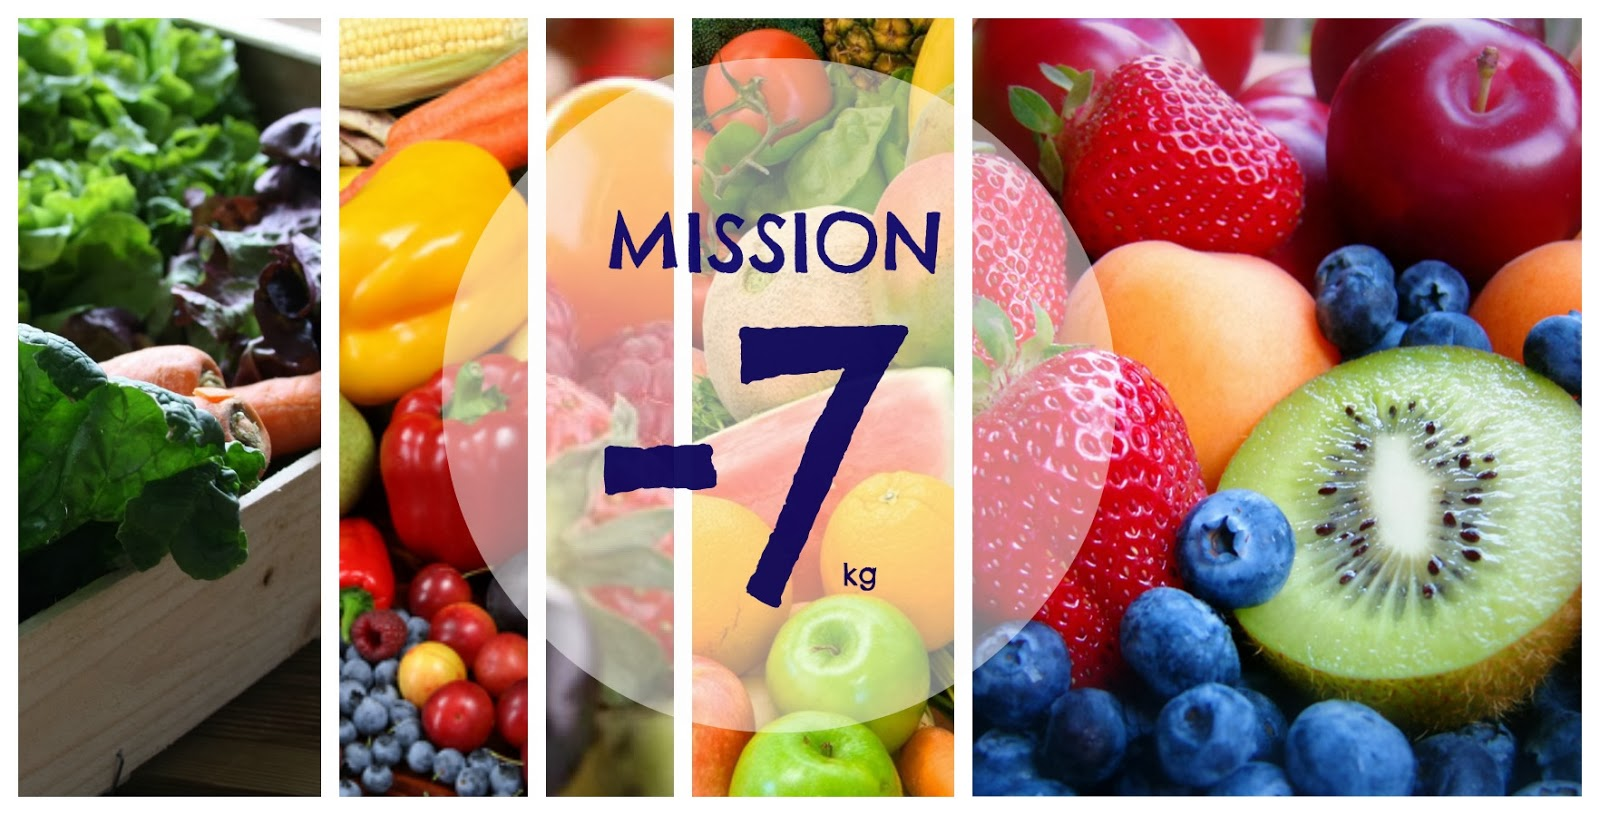 Mission -7kg! ou Comment me reprendre en main!